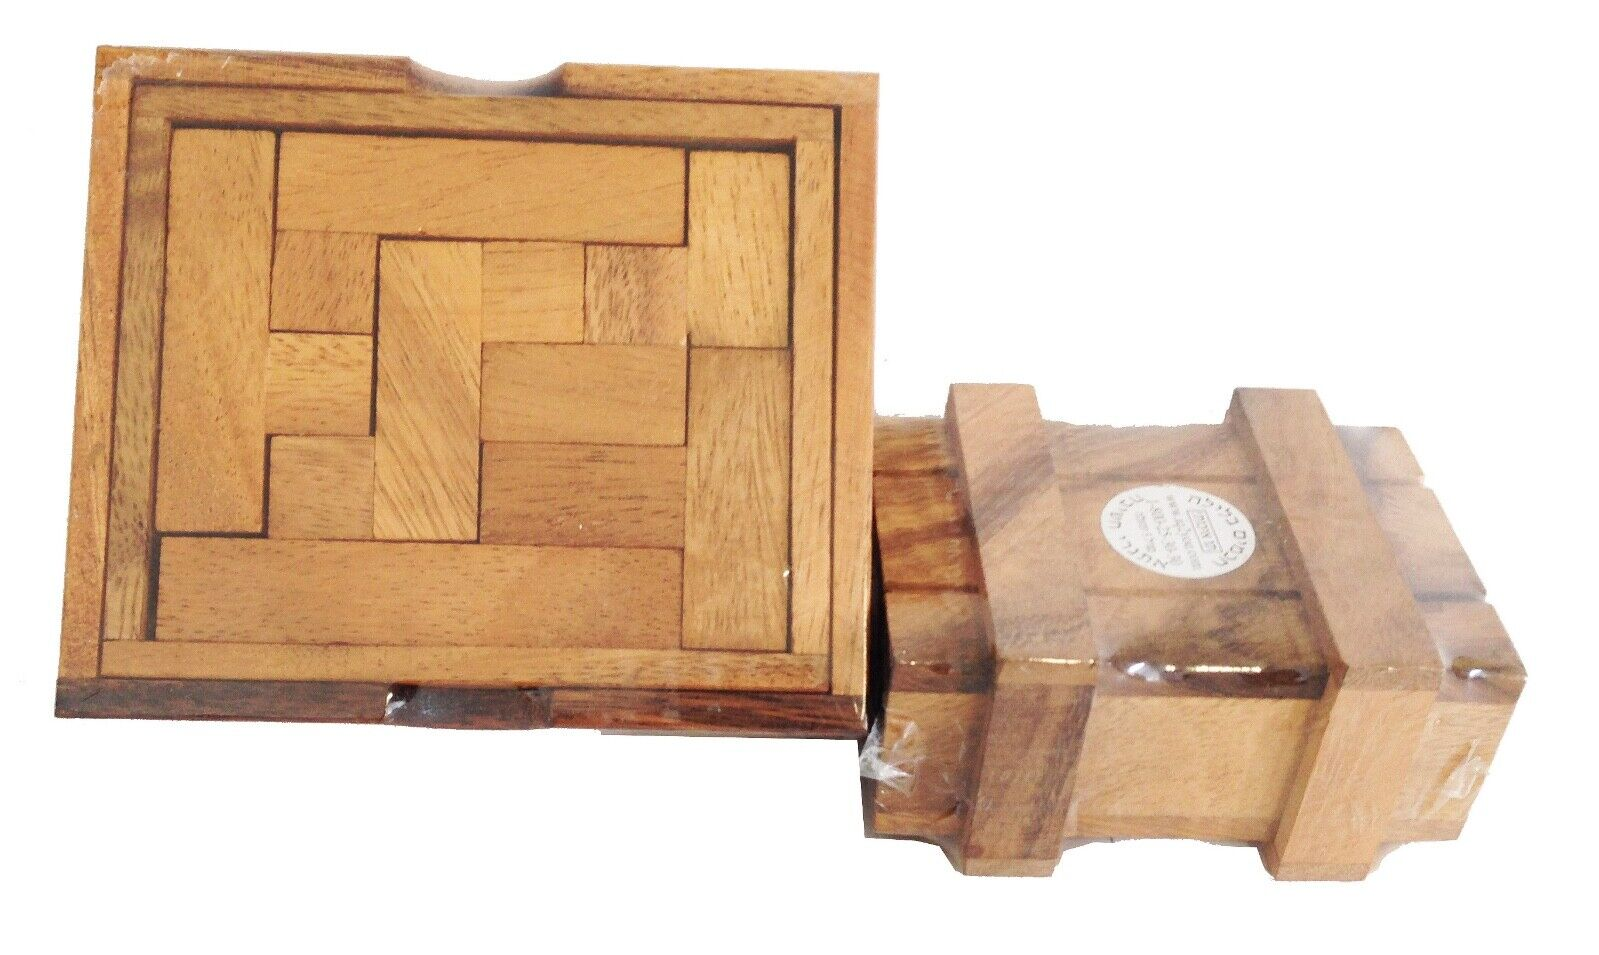 Knobel- Denkspiele 2er Set Holz Magic Box / Double Square Puzzle